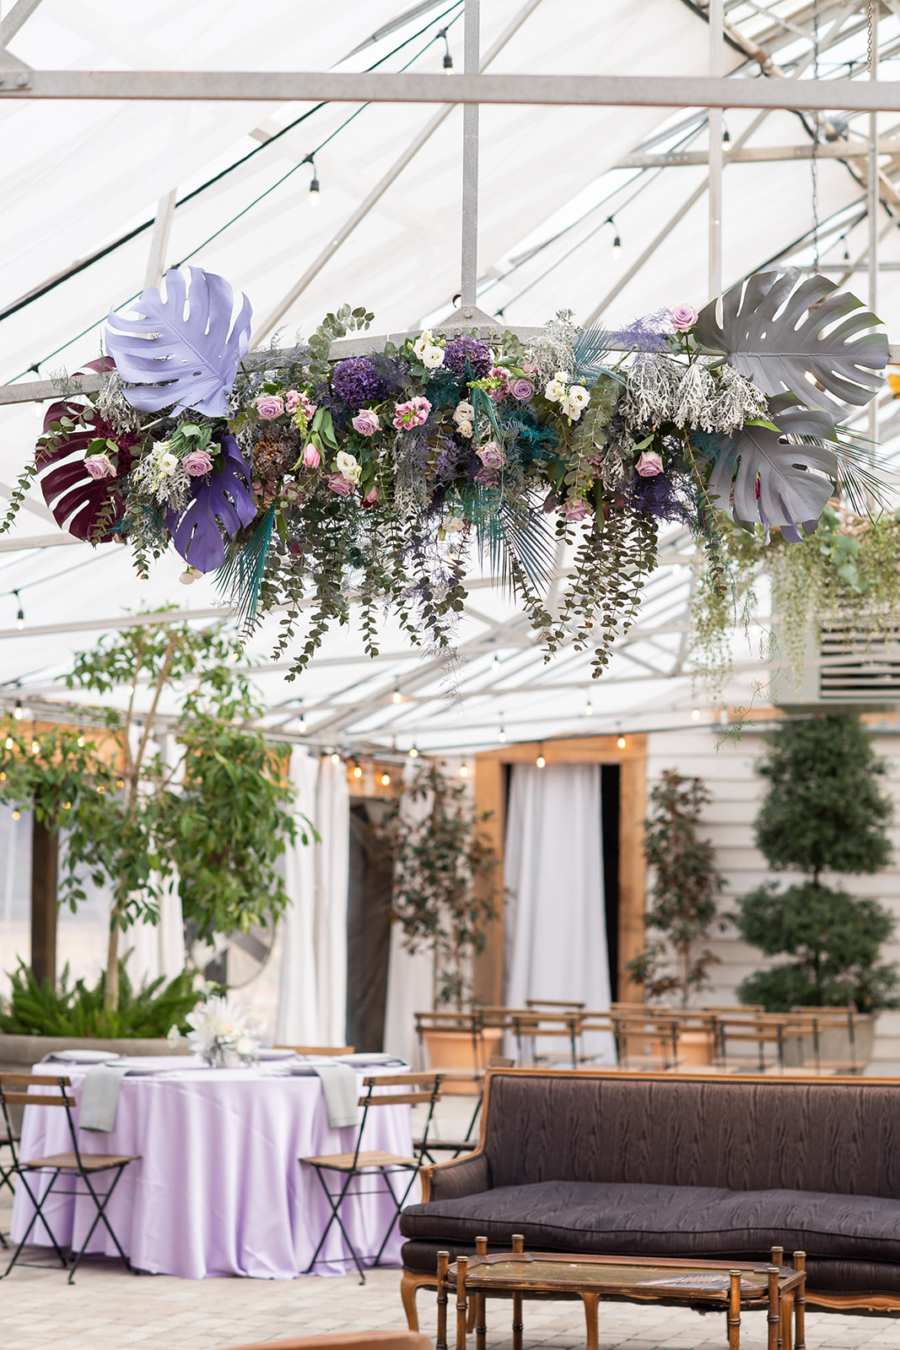 Colorful hanging floral installation